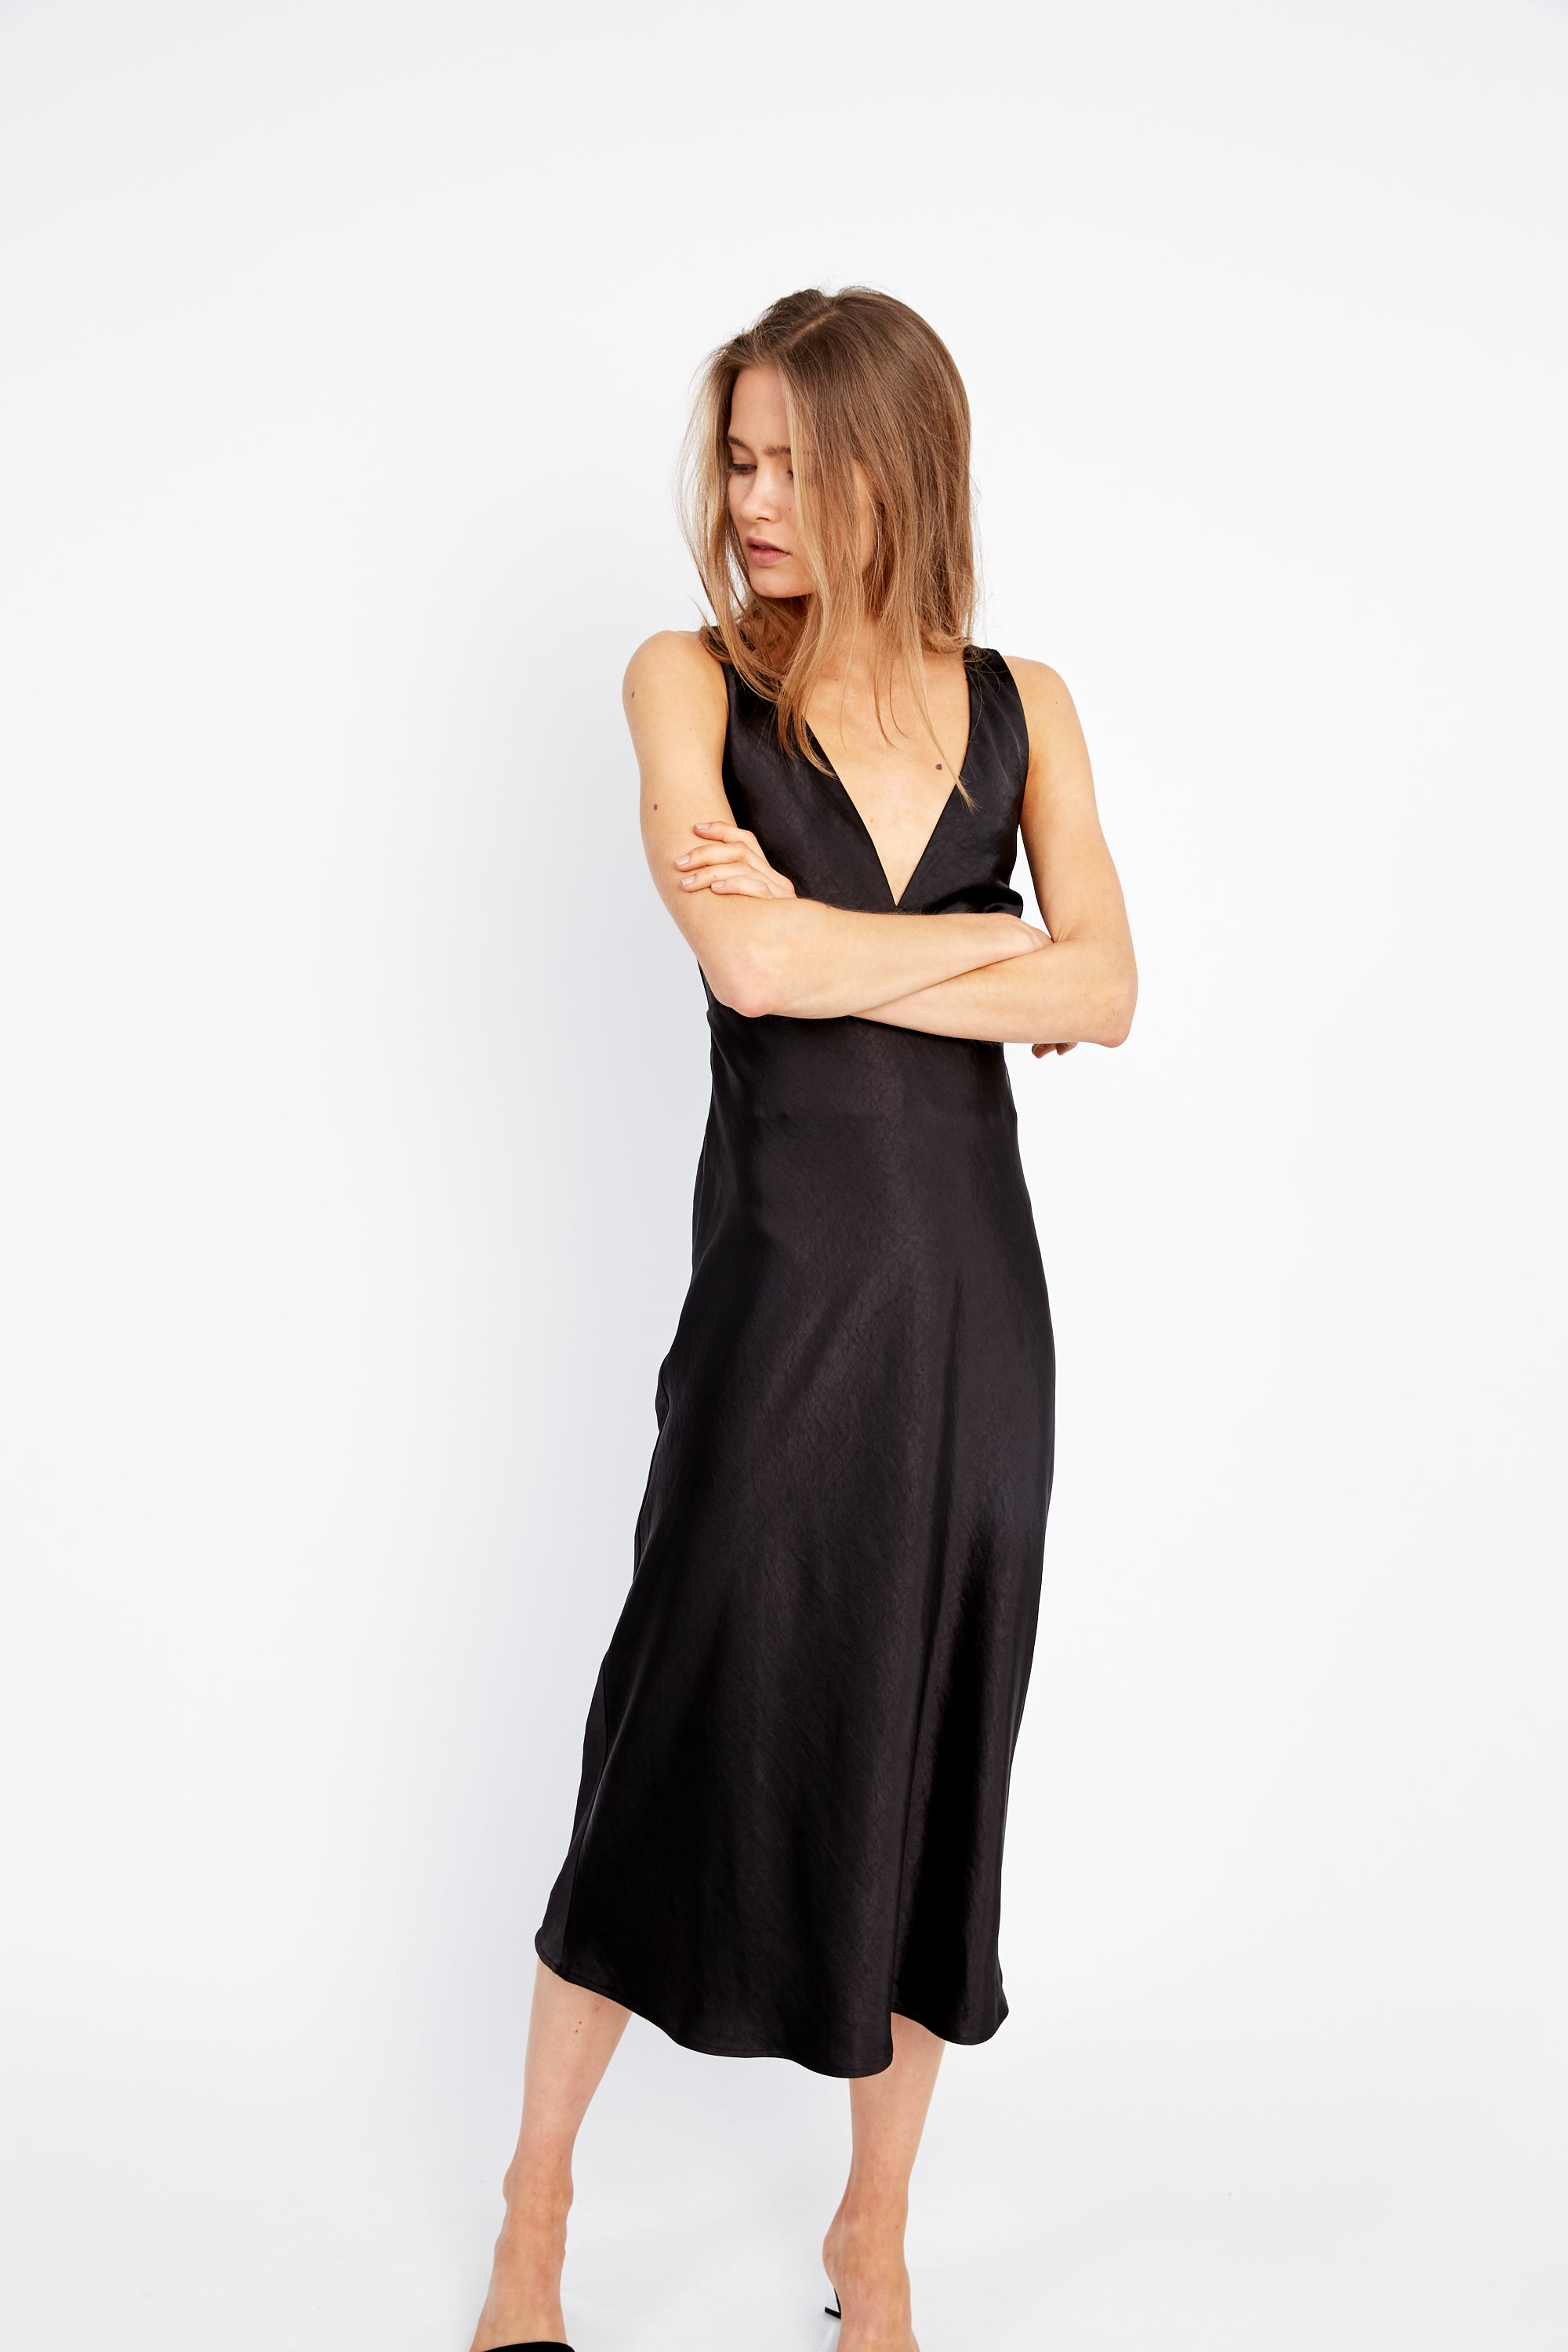 OUTLAW TIE BACK BIAS SLIP | BLACK